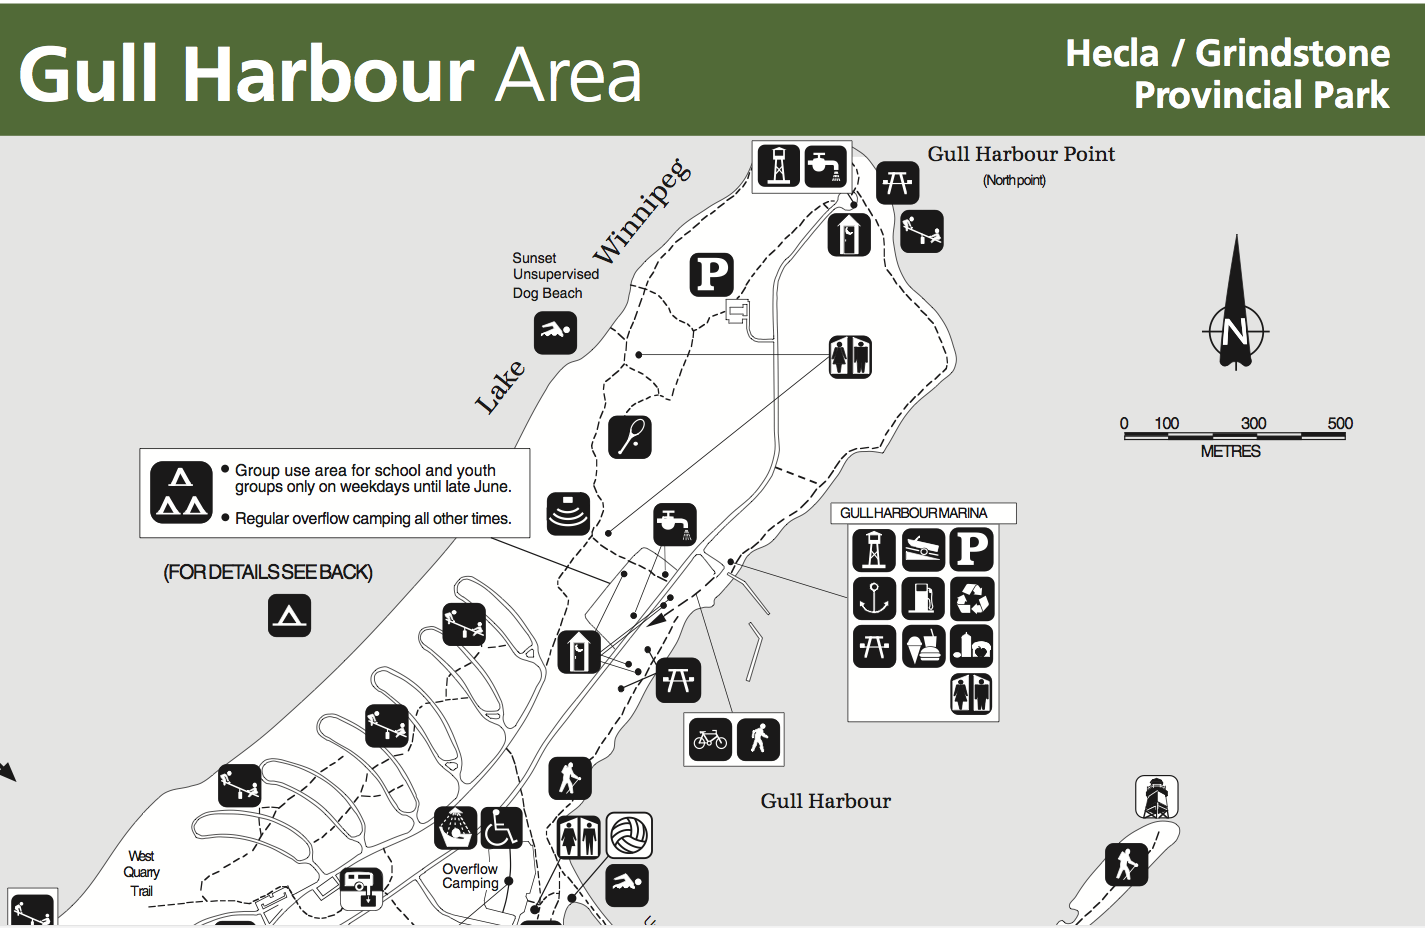 Gull Harbour Area